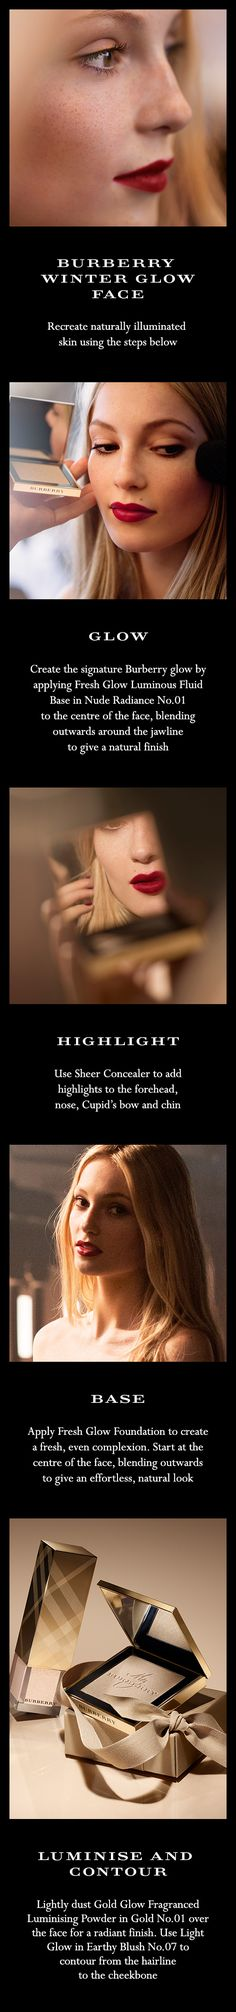 "The Winter Glow beauty look appears in the Burberry festive film, ""From London with Love"". Recreate the luminous skin from the look by following these steps."